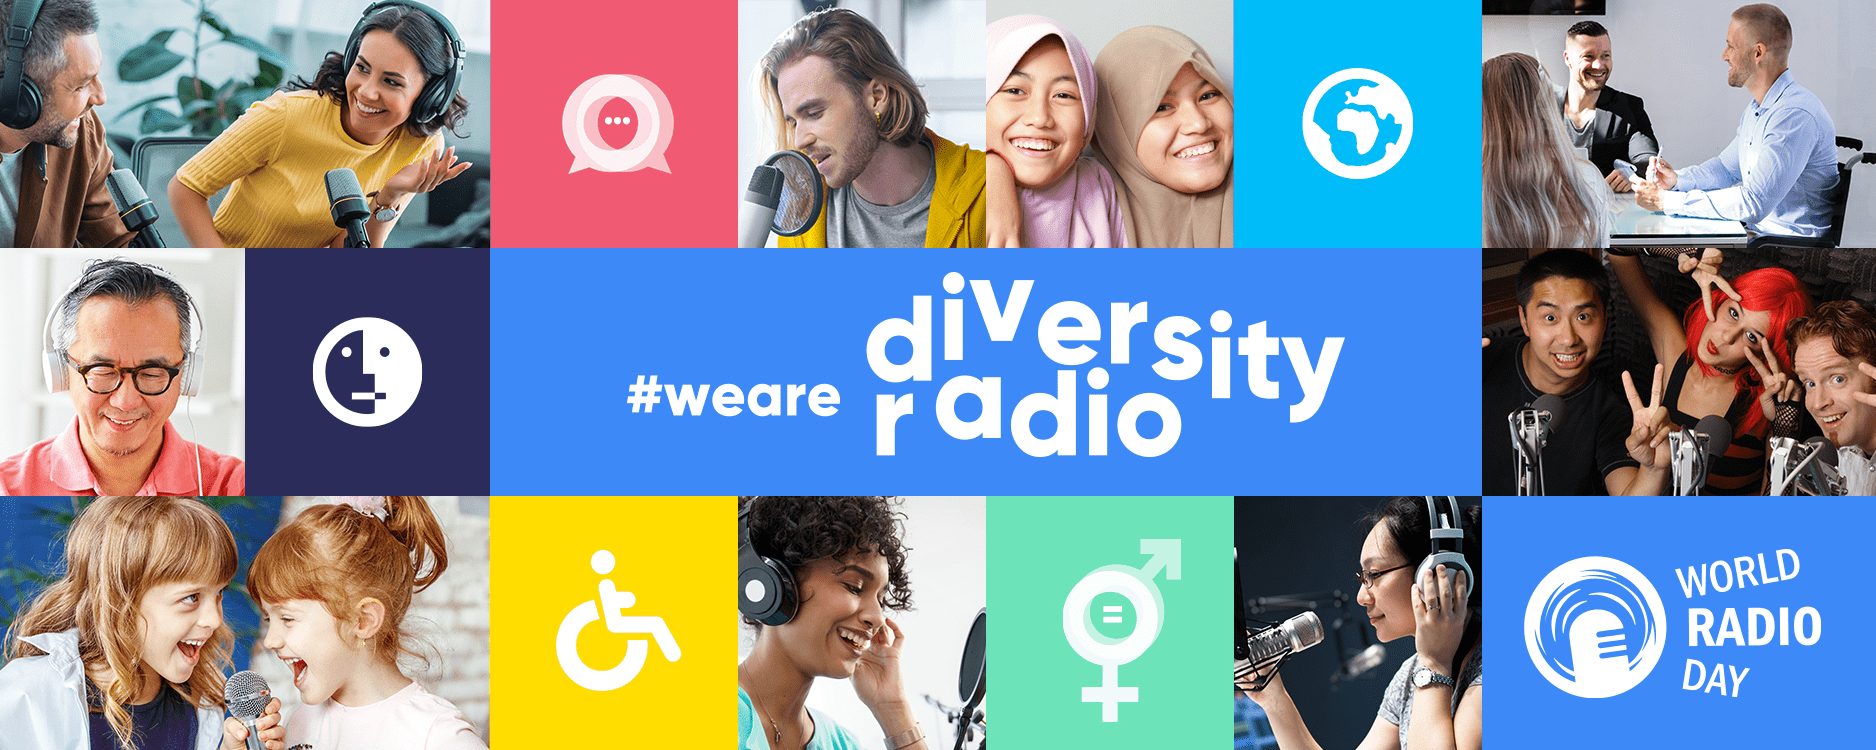 World Radio Day Banner with photos of people listening